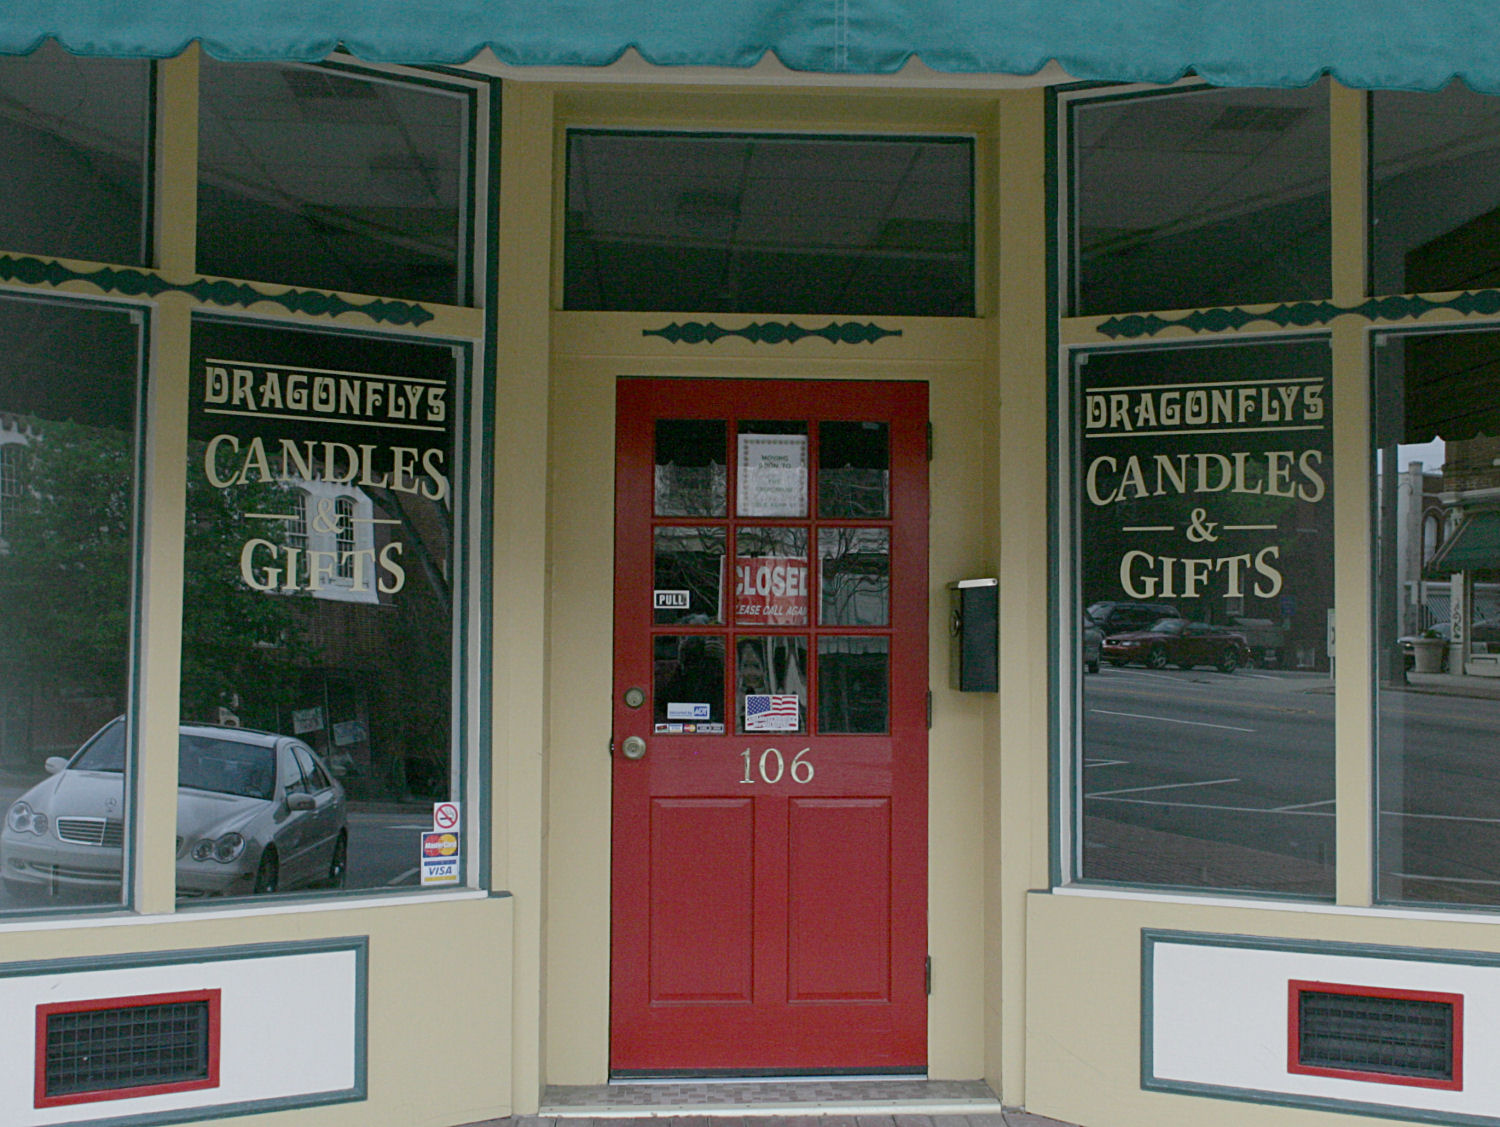 dragonfly s candles and gifts author kelly landru landrum